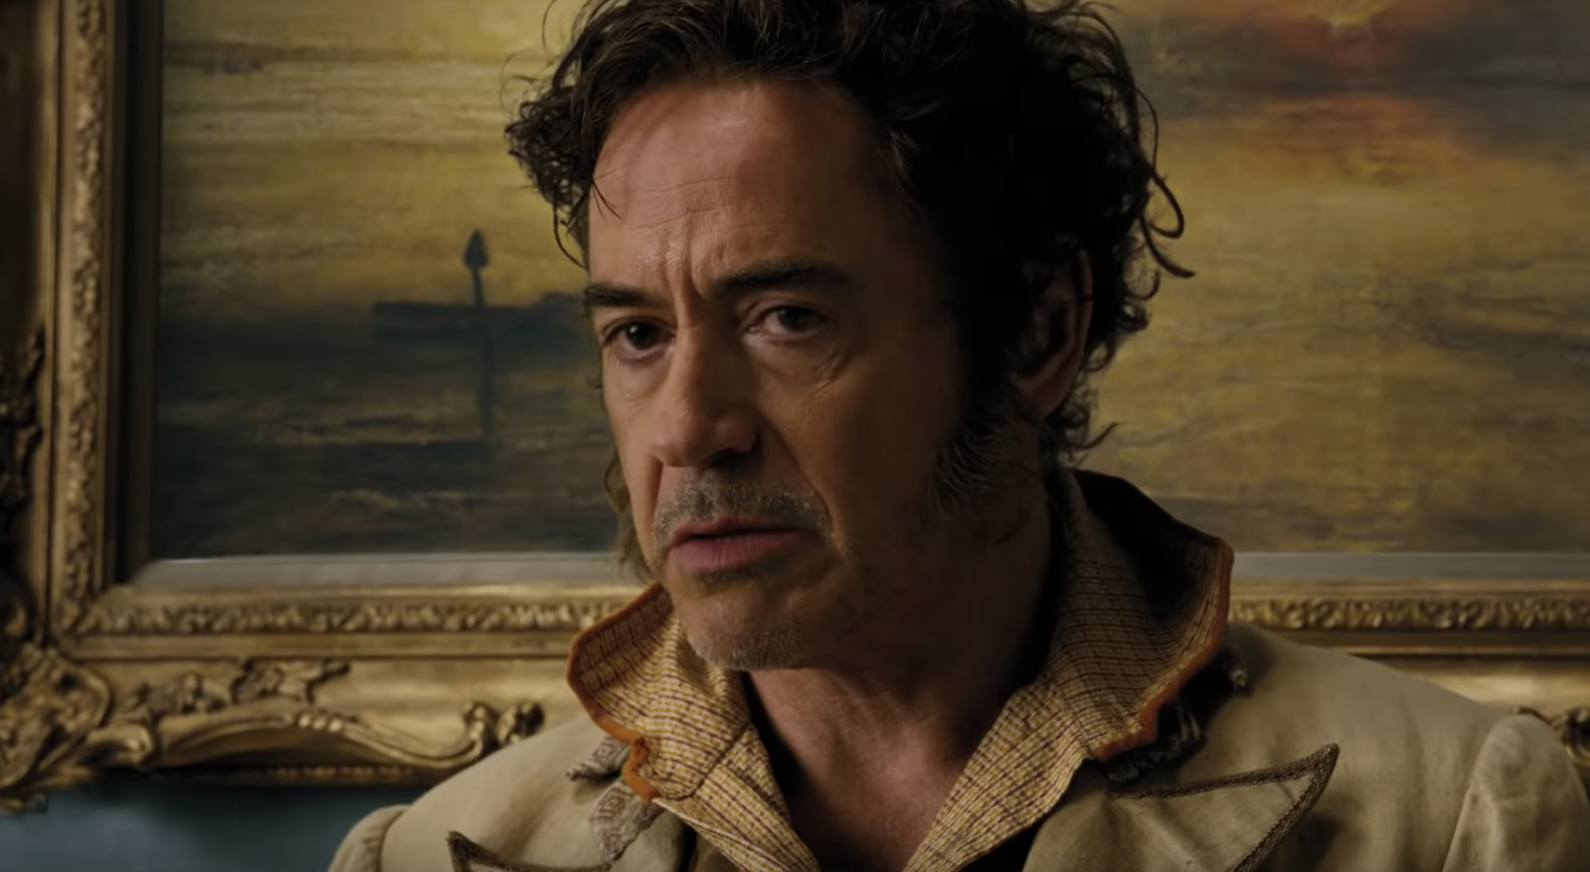 'Dolittle' Trailer: Robert Downey Jr. Turns His Franchise Hopes to a Pack of Wild Animals